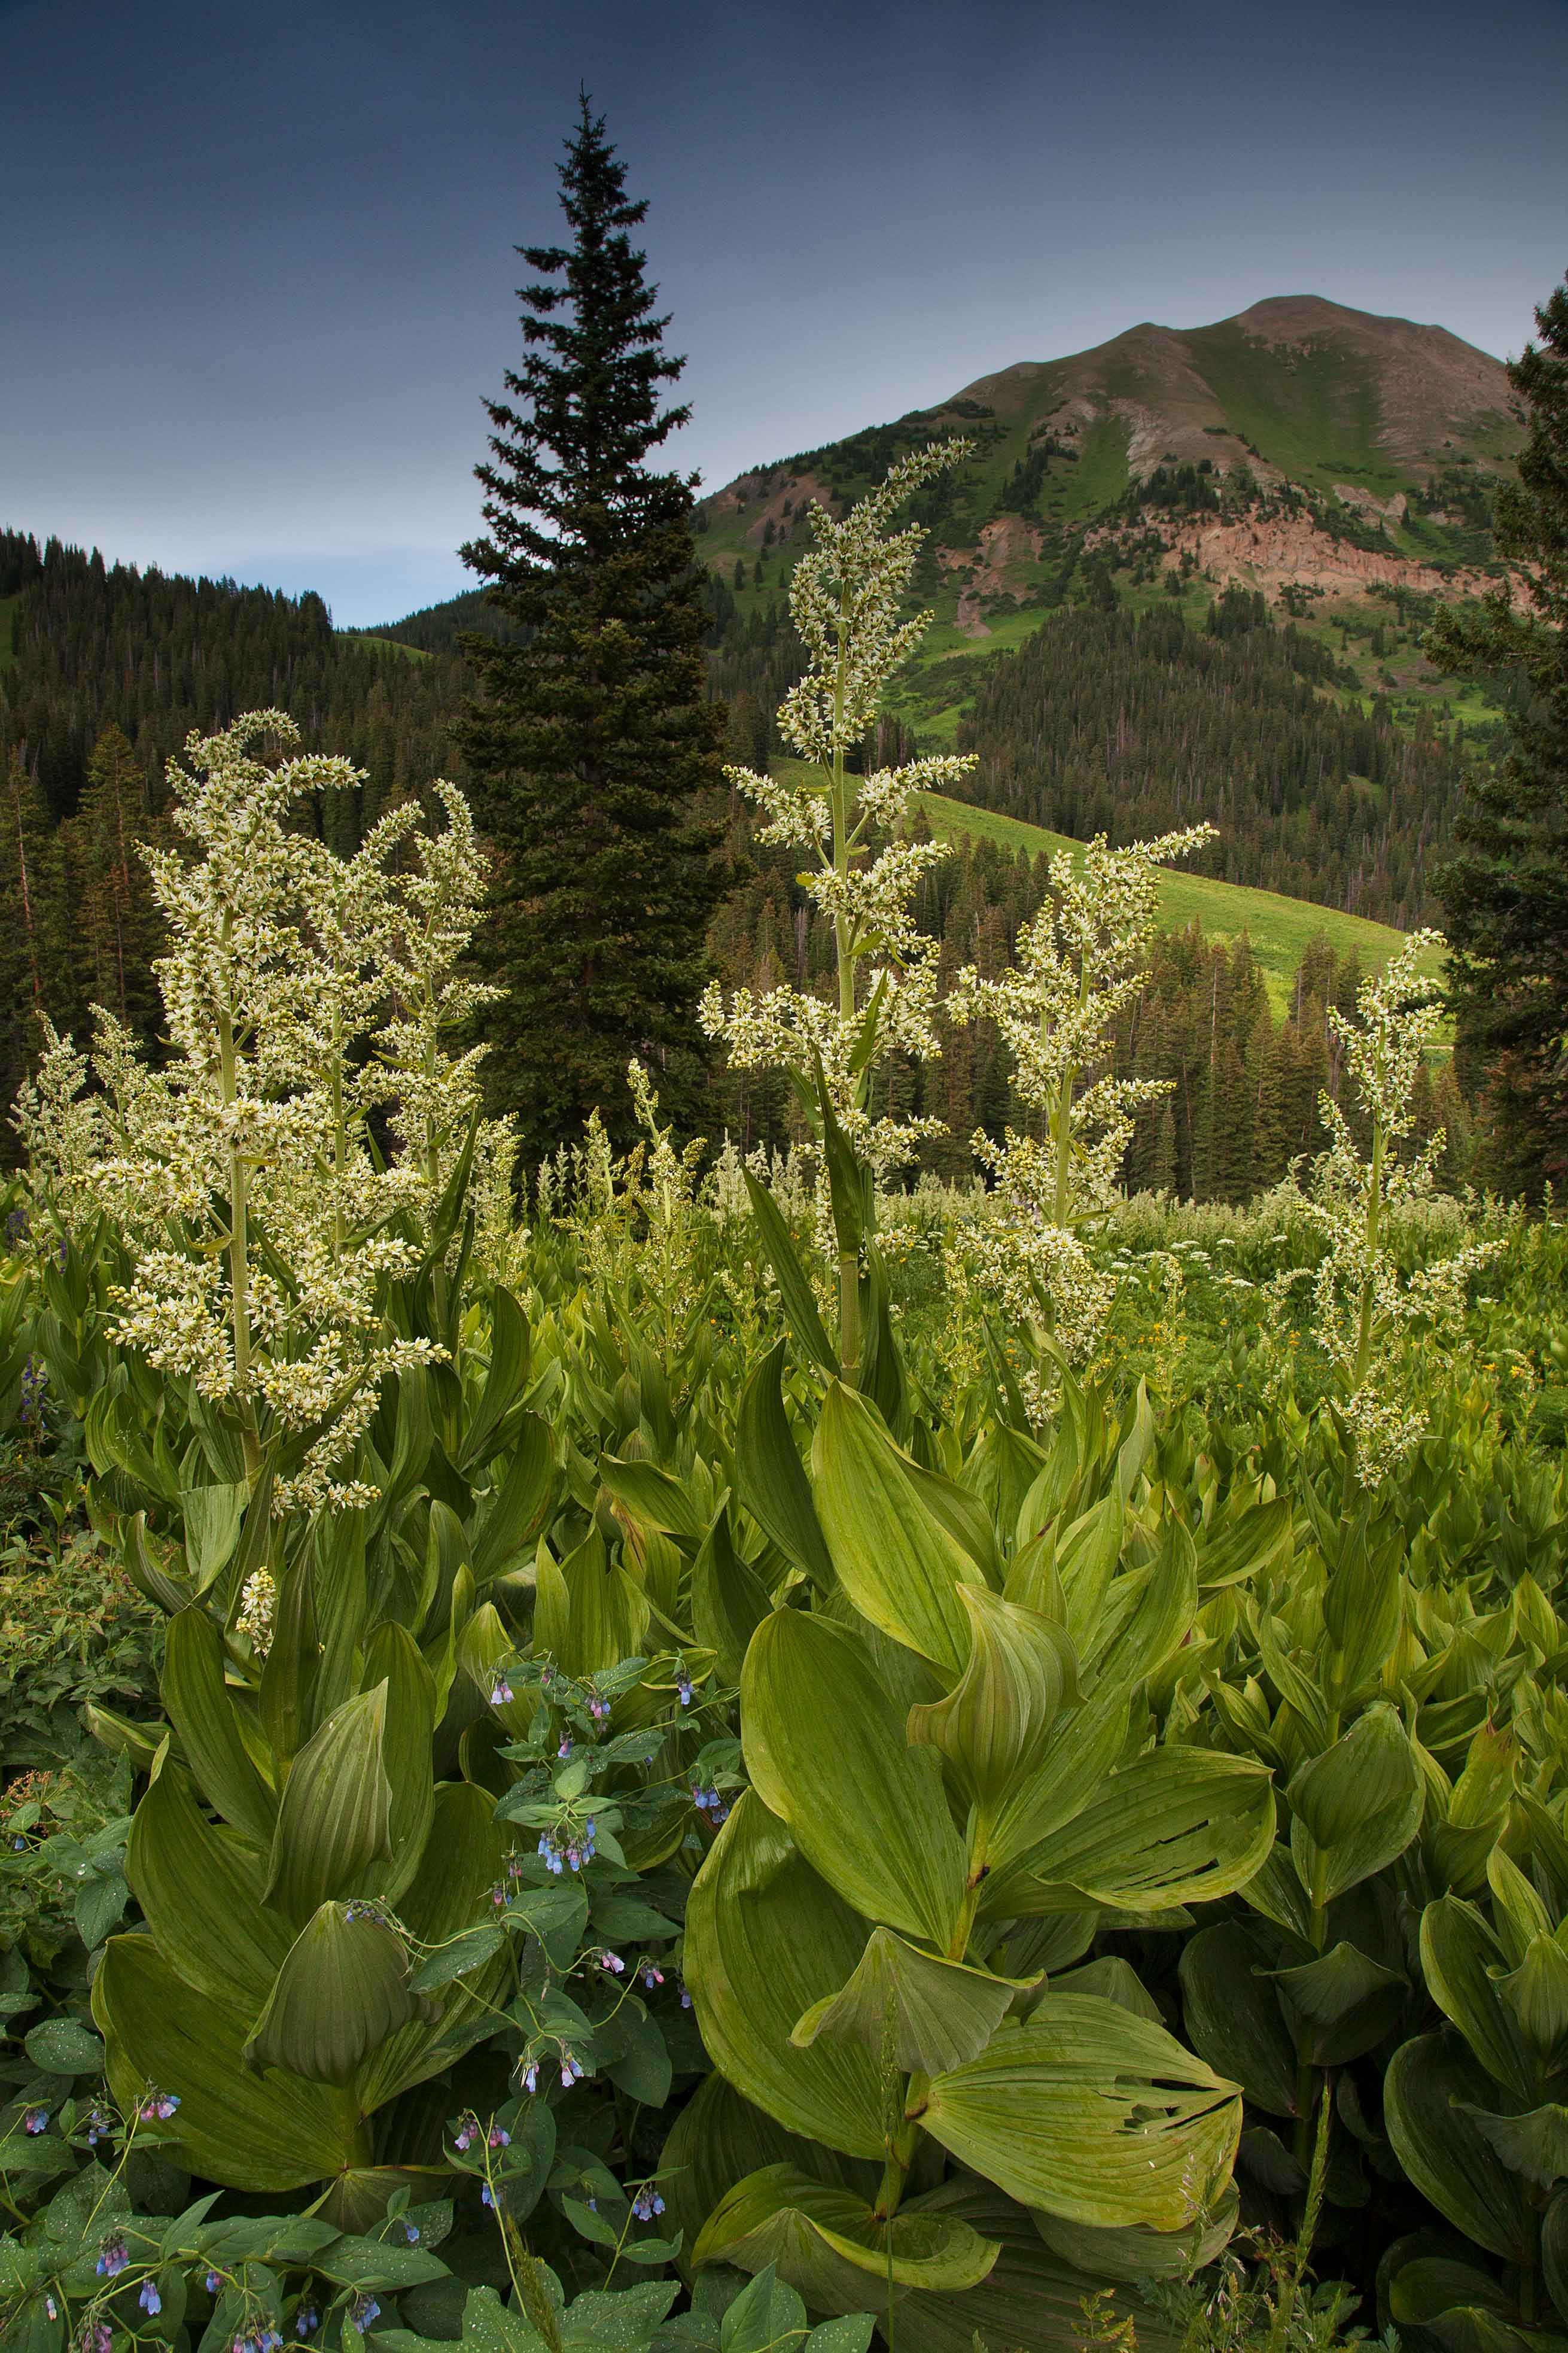 Corn Lilies and such in the Colorado Rocky Mts.